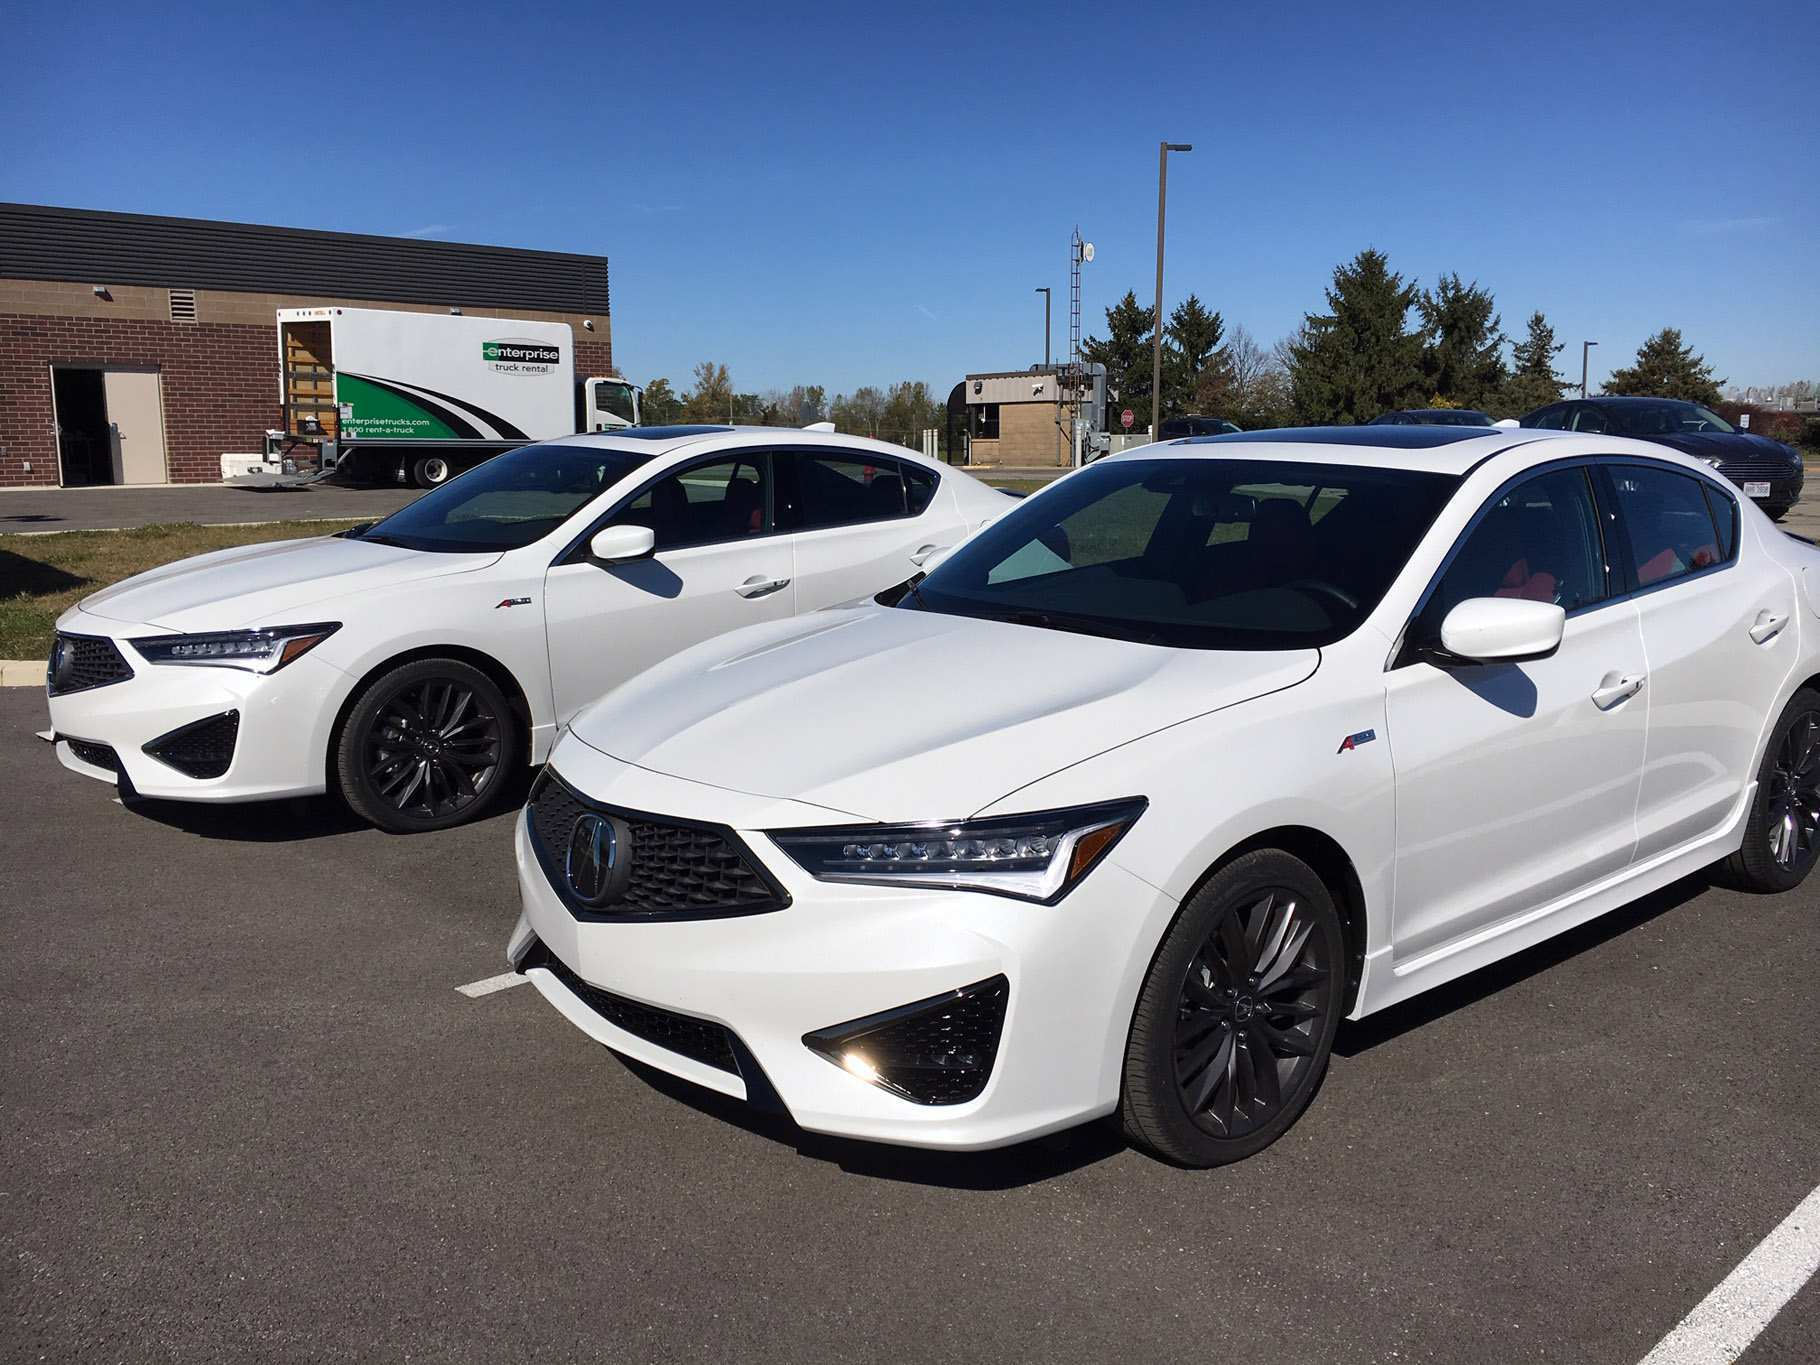 74 All New 2020 Acura Legend Price And Release Date